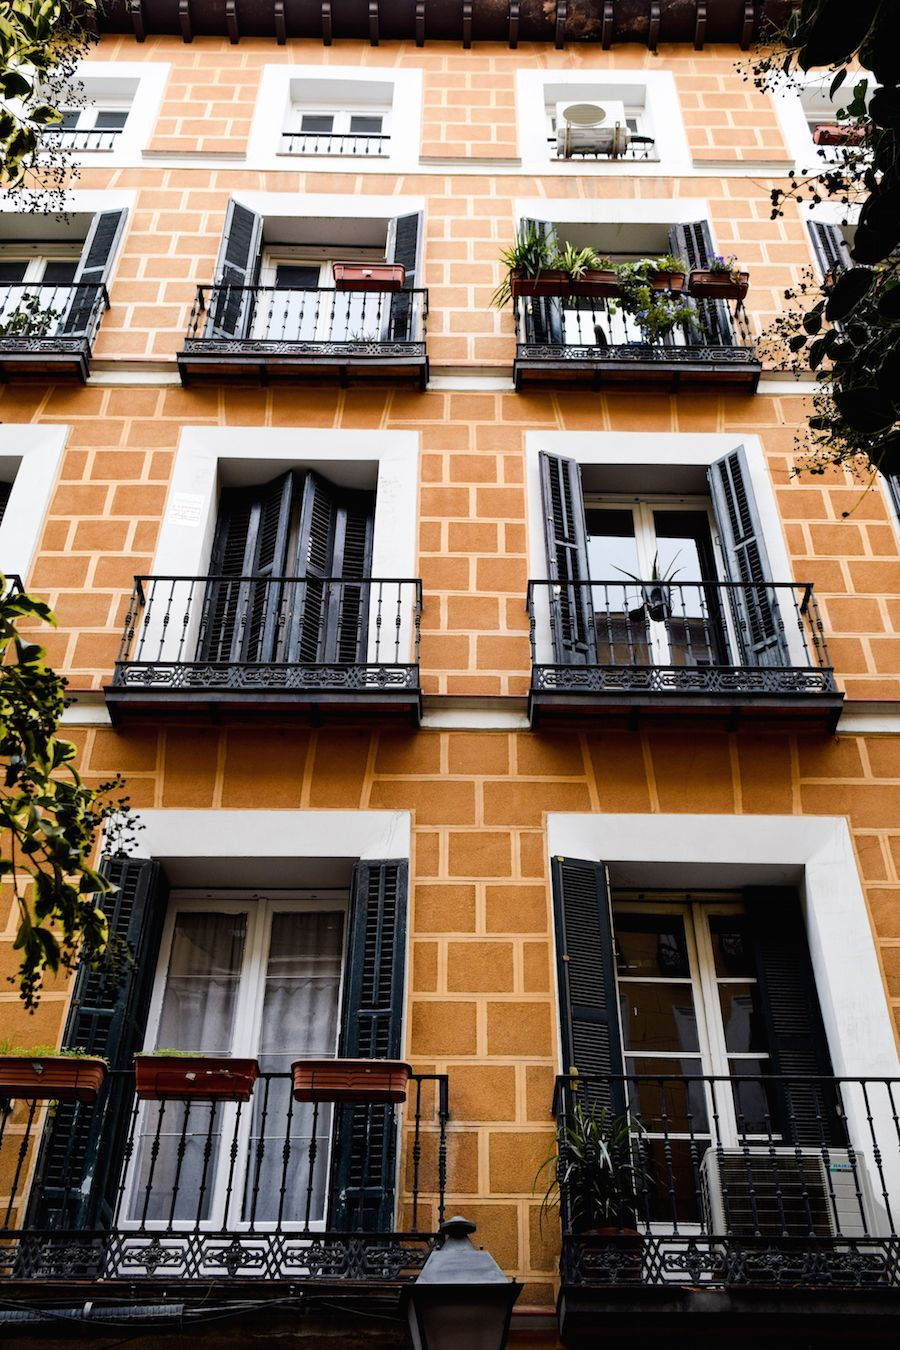 Orange architecture in Malasaña, Madrid